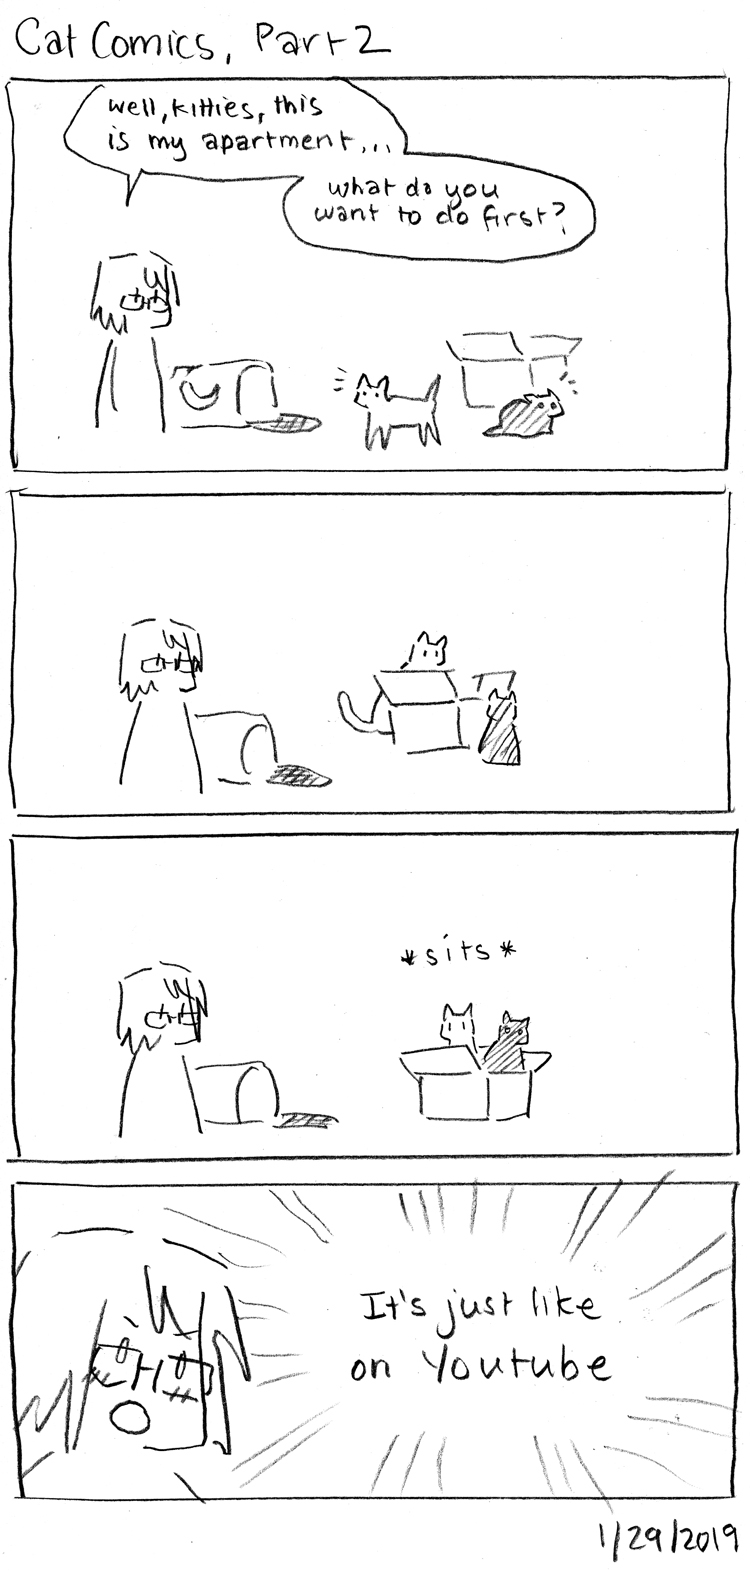 Cat Comics, Part 2